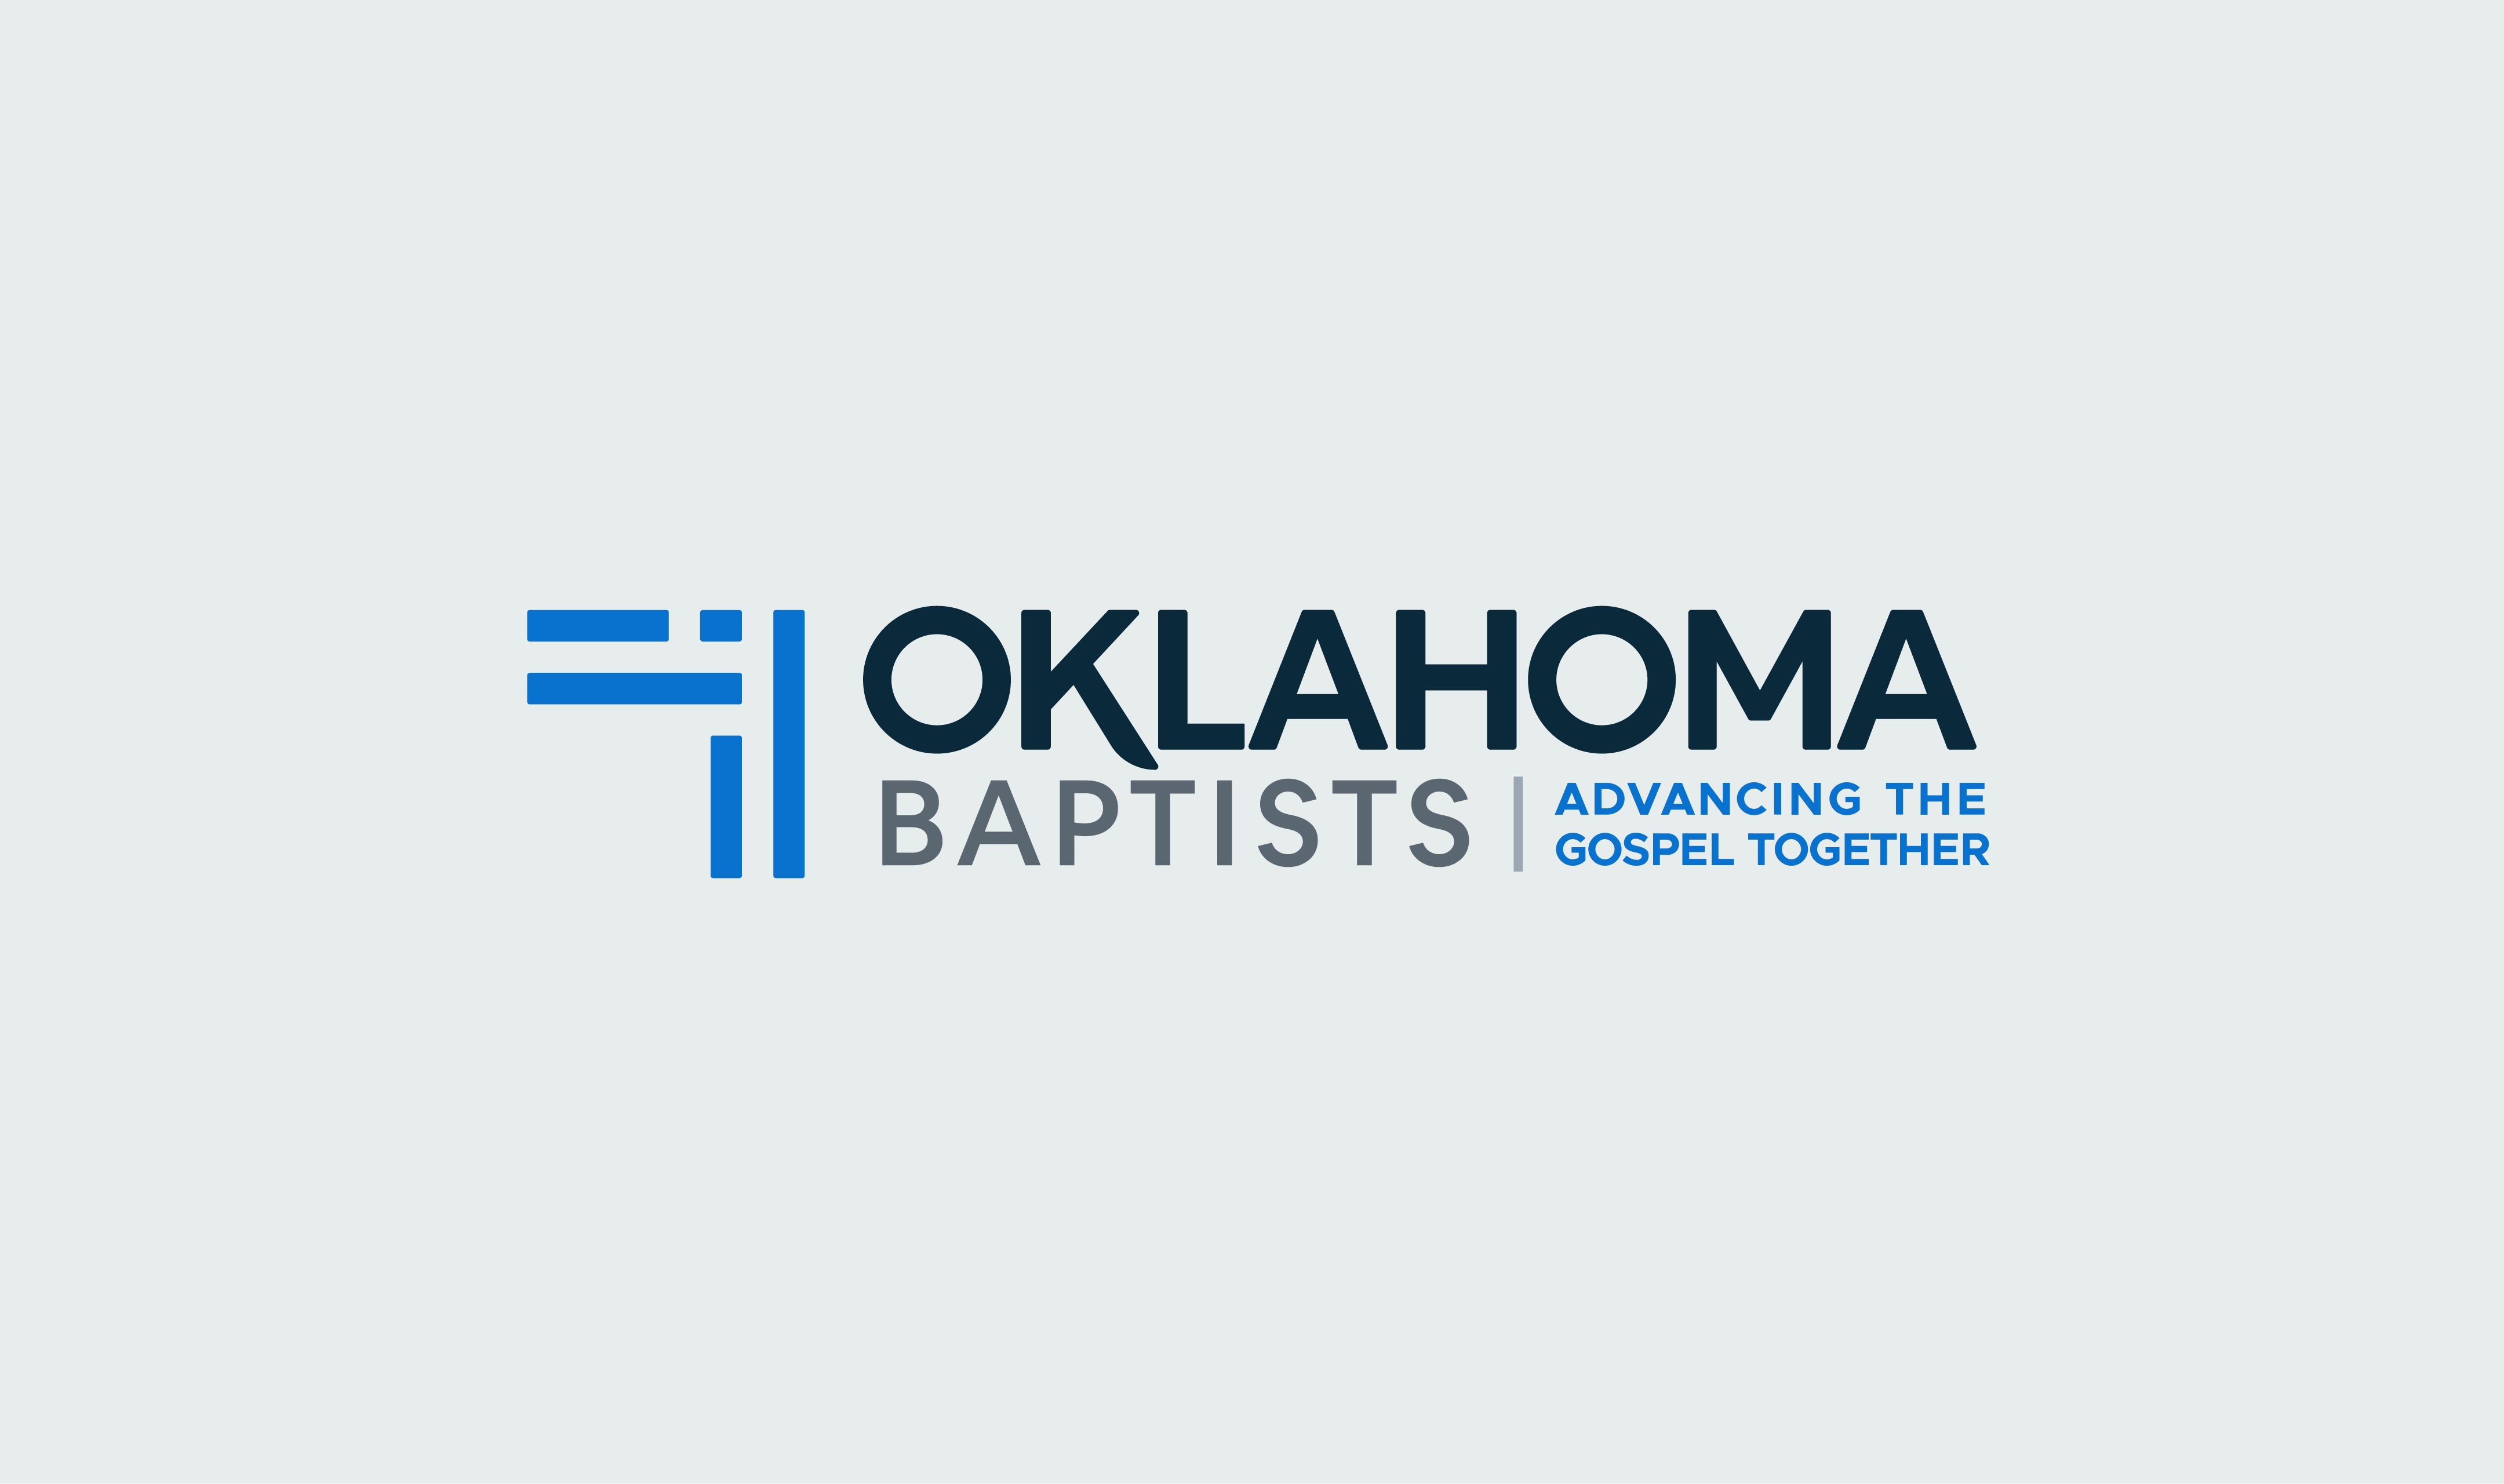 A version of the Oklahoma Baptists logo with the tagline 'Advancing the Gospel together'